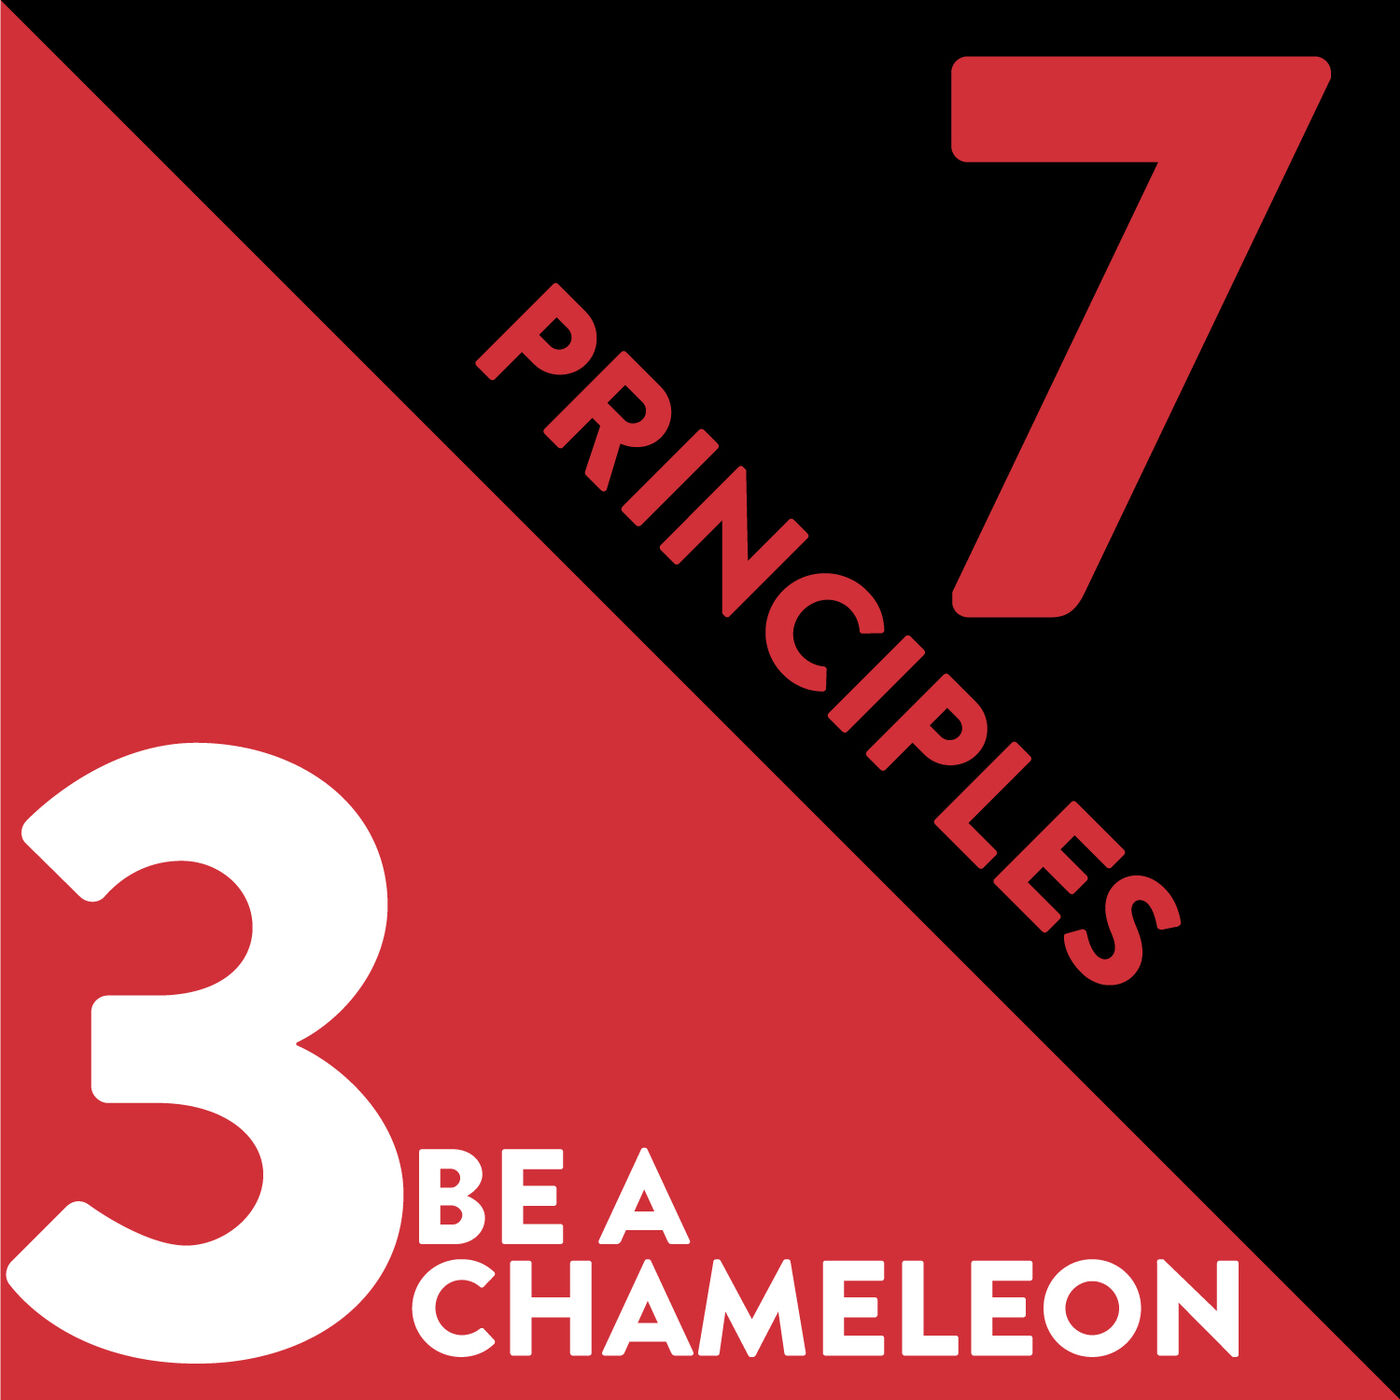 Be a Chameleon: The Third Principle of Relationship Management